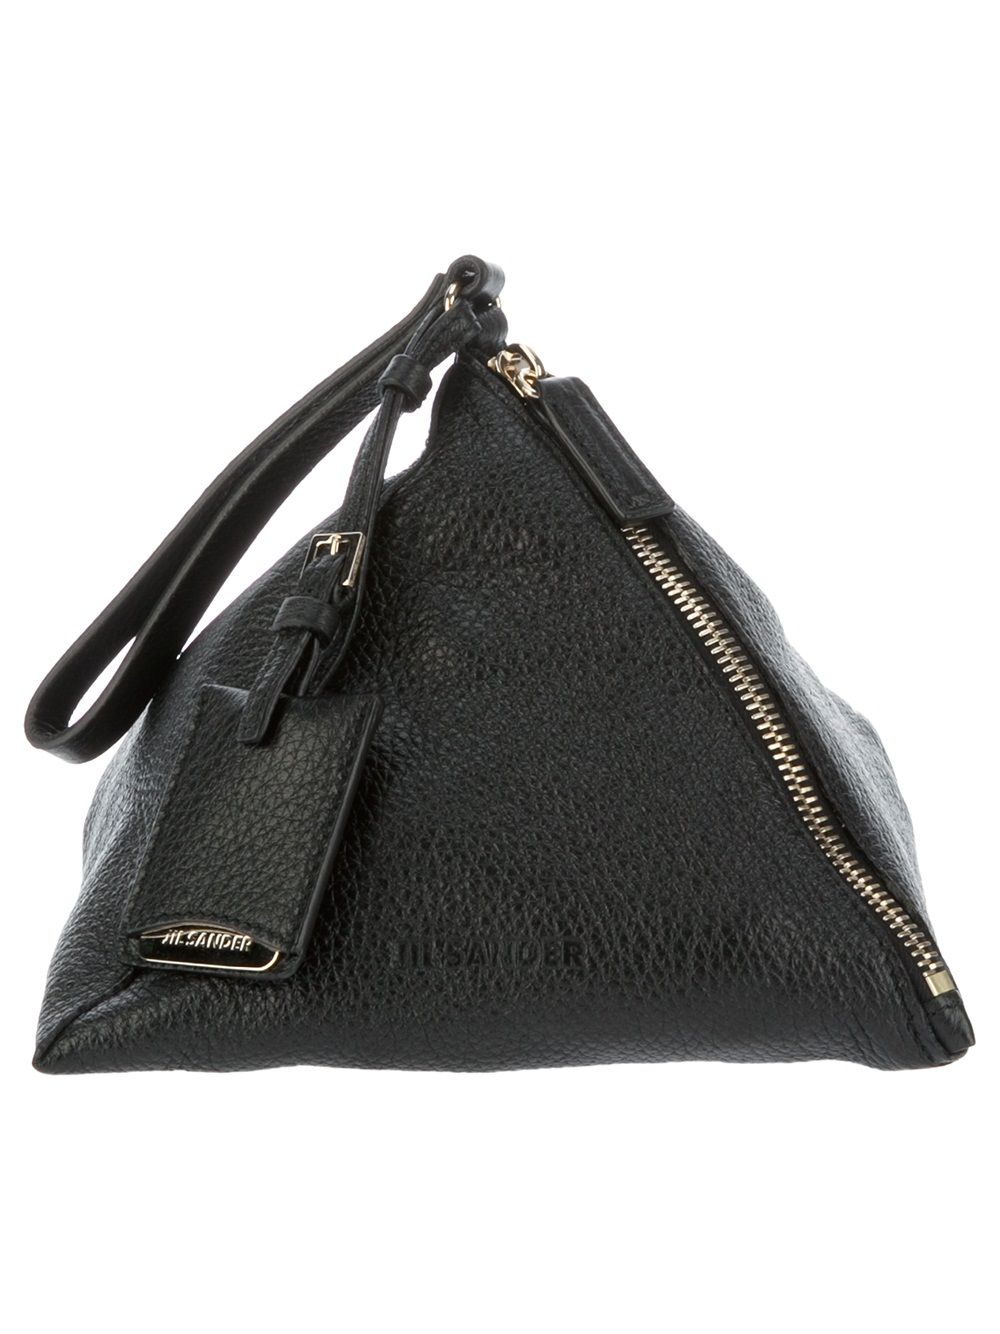 pyramid clutch bag - Black Jil Sander qfBpE